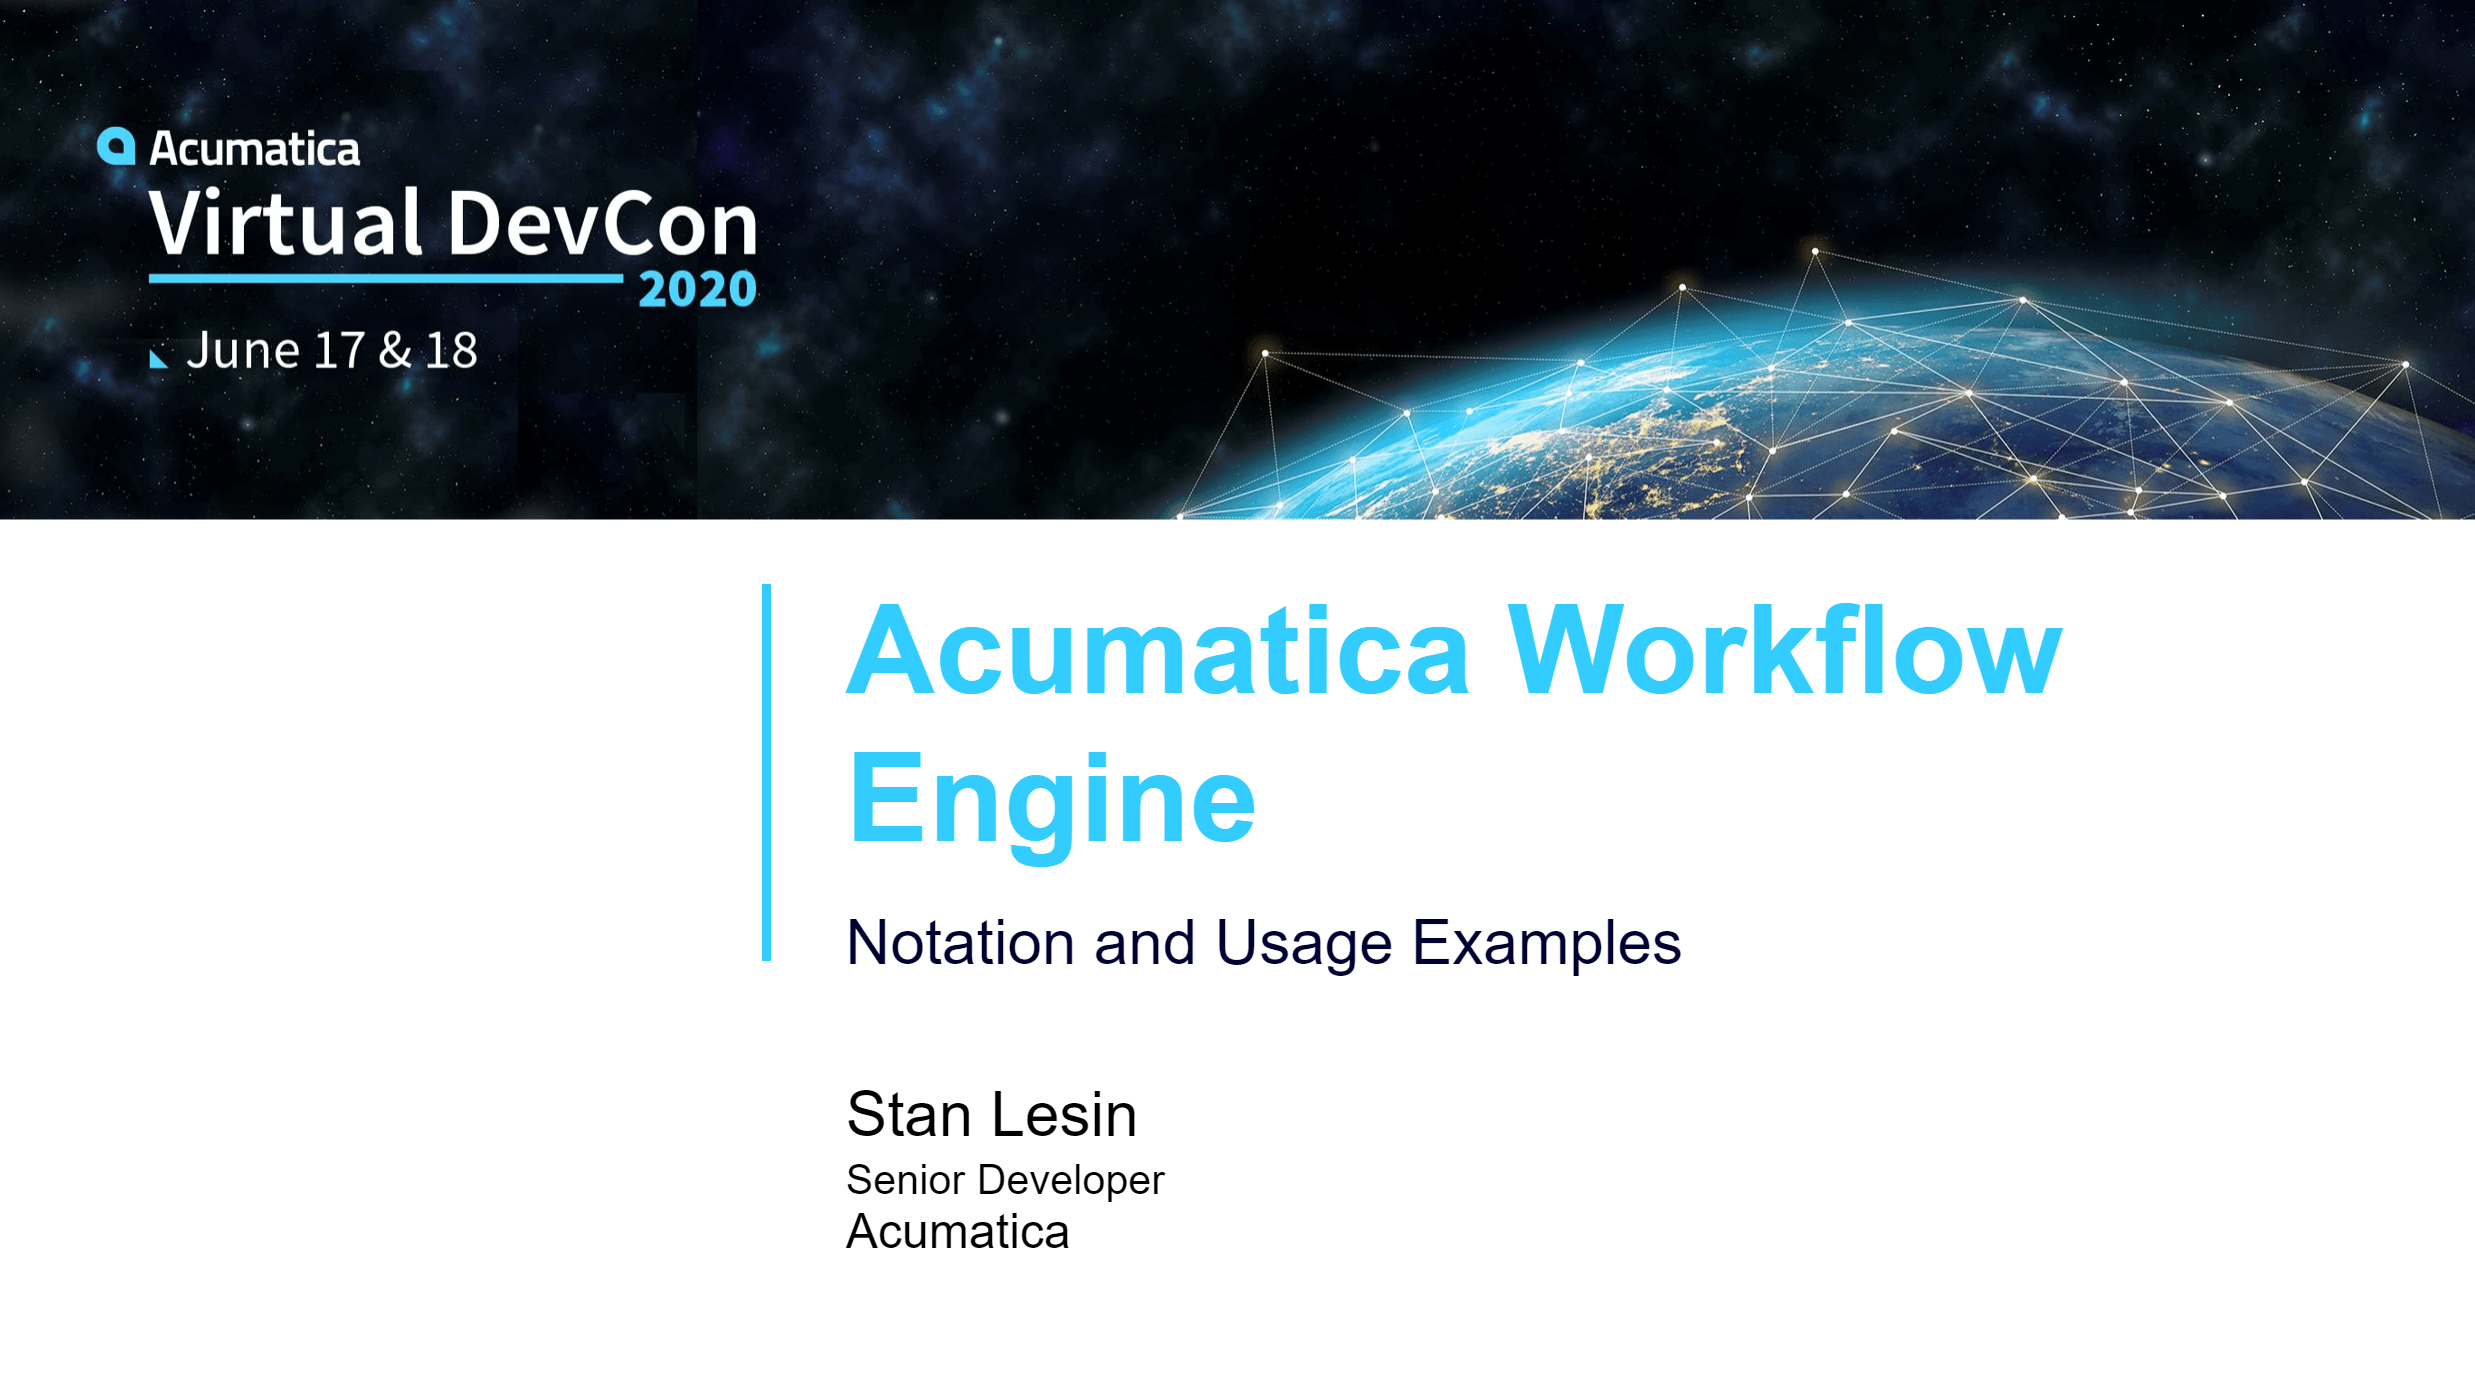 DevCon 2020 - Acumatica Workflow Engine - Notation and Usage Examples